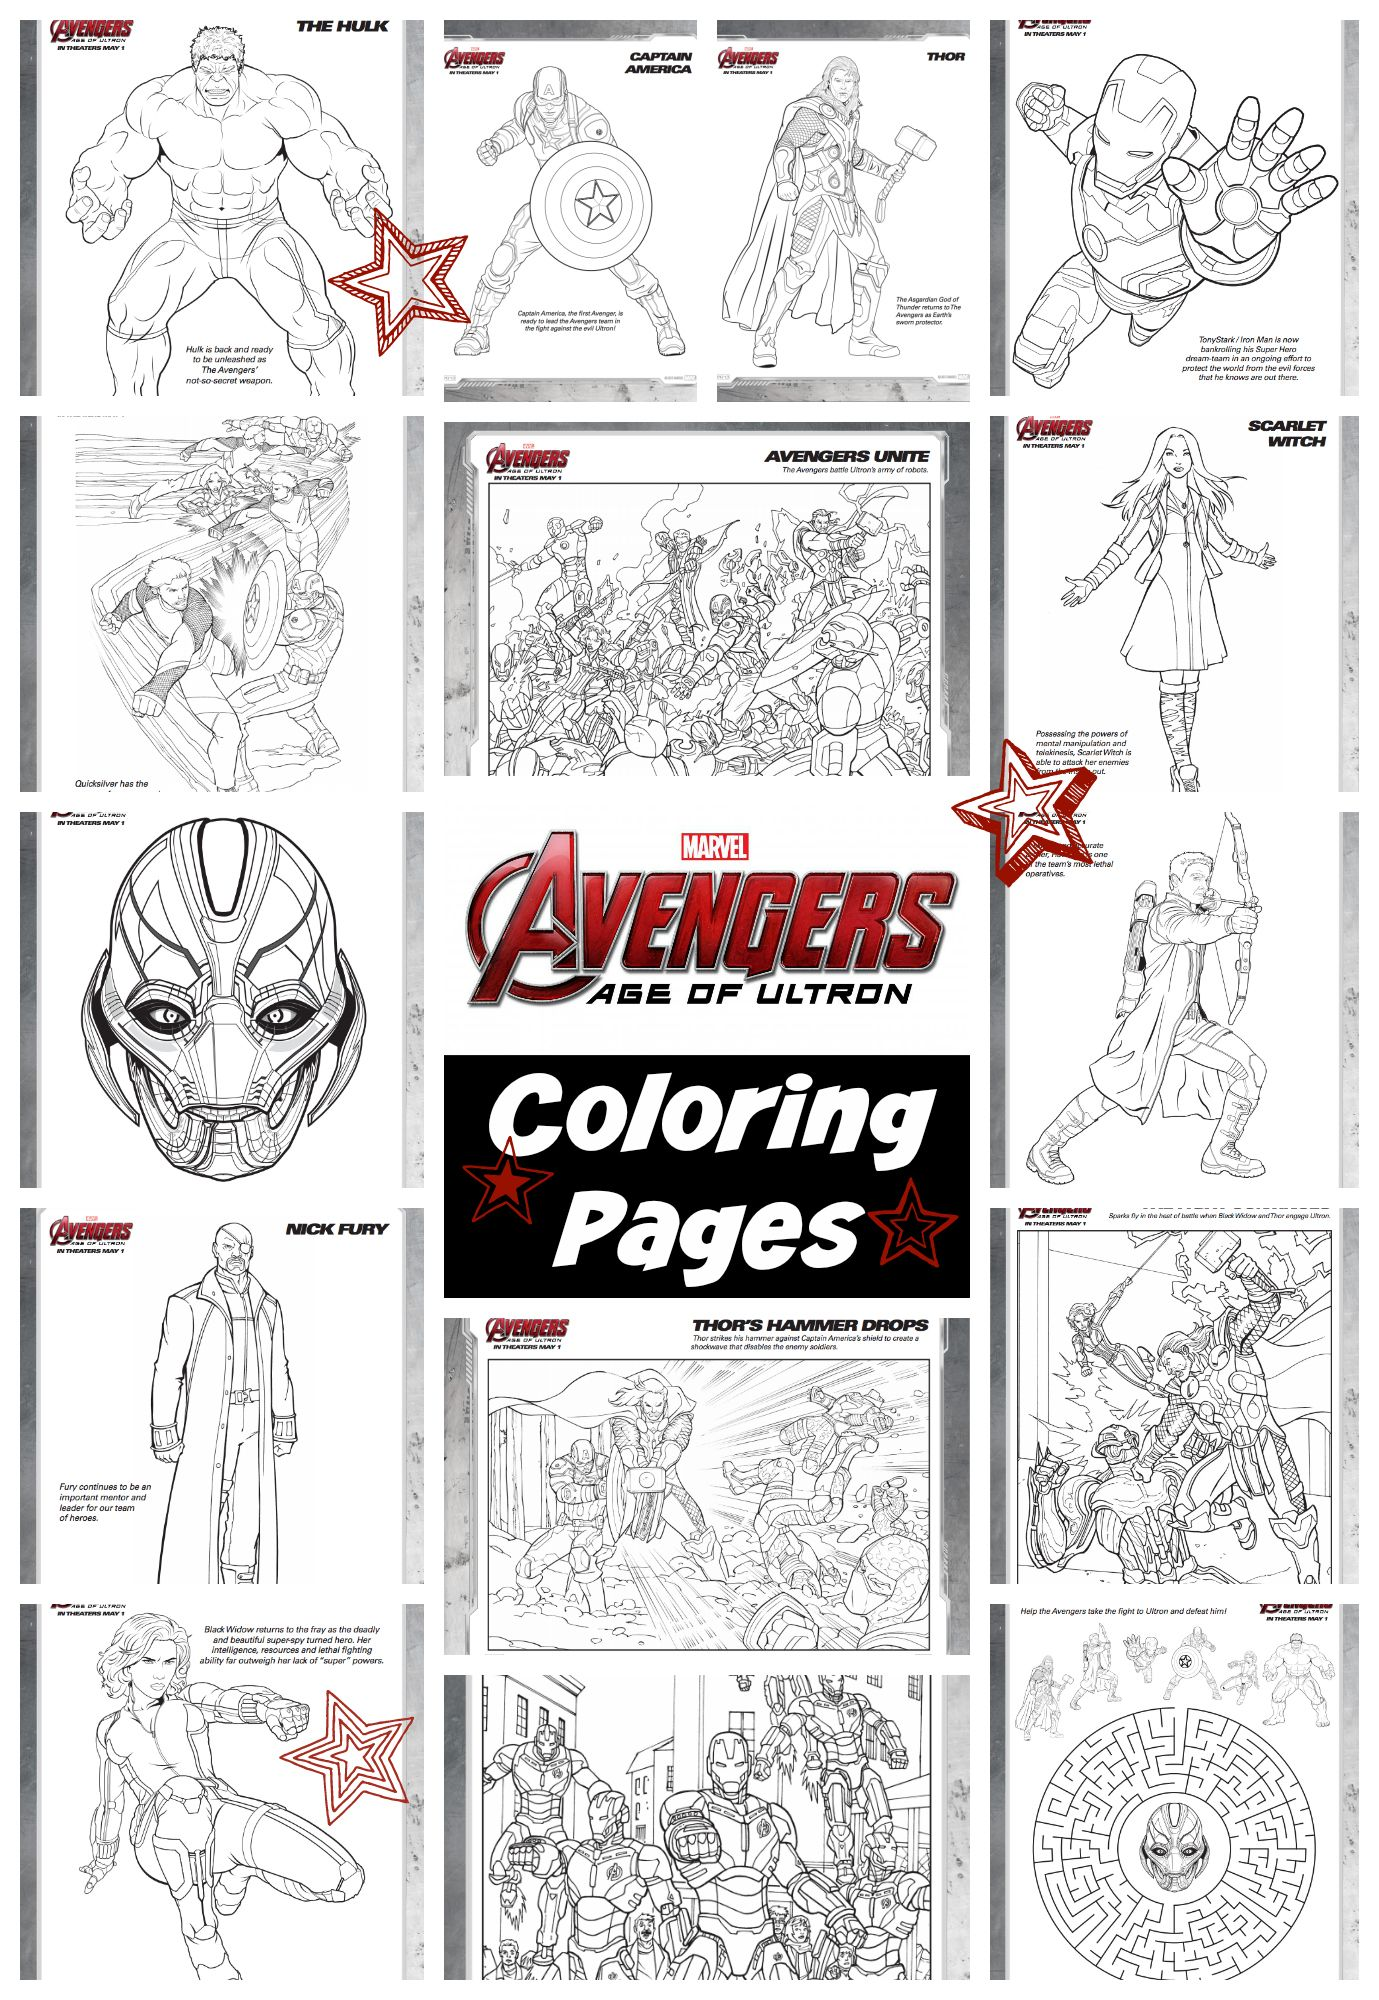 Age Of Ultron Coloring Book Review : Avengers: Age of Ultron Coloring Pages #AvengersEvent Avengers age and Craft